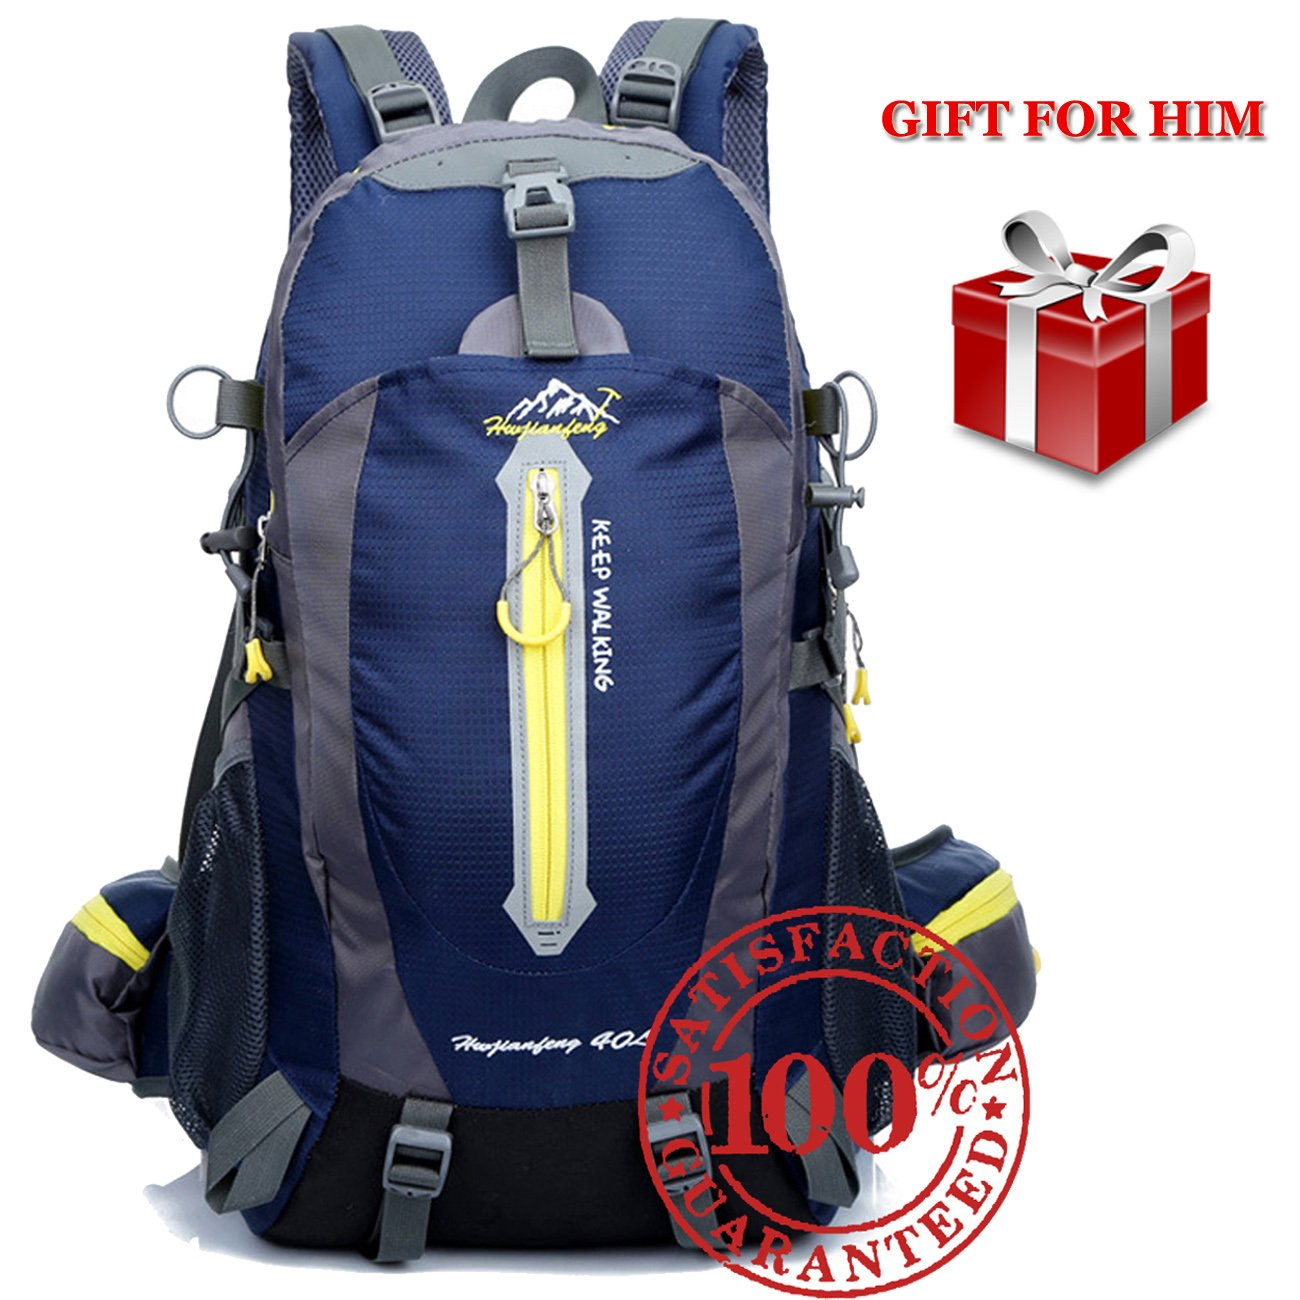 Get Quotations Hiking Backpack For Men 40 Liter Lightweight Waterproof Weekend Day Pack Small Daypack Bag